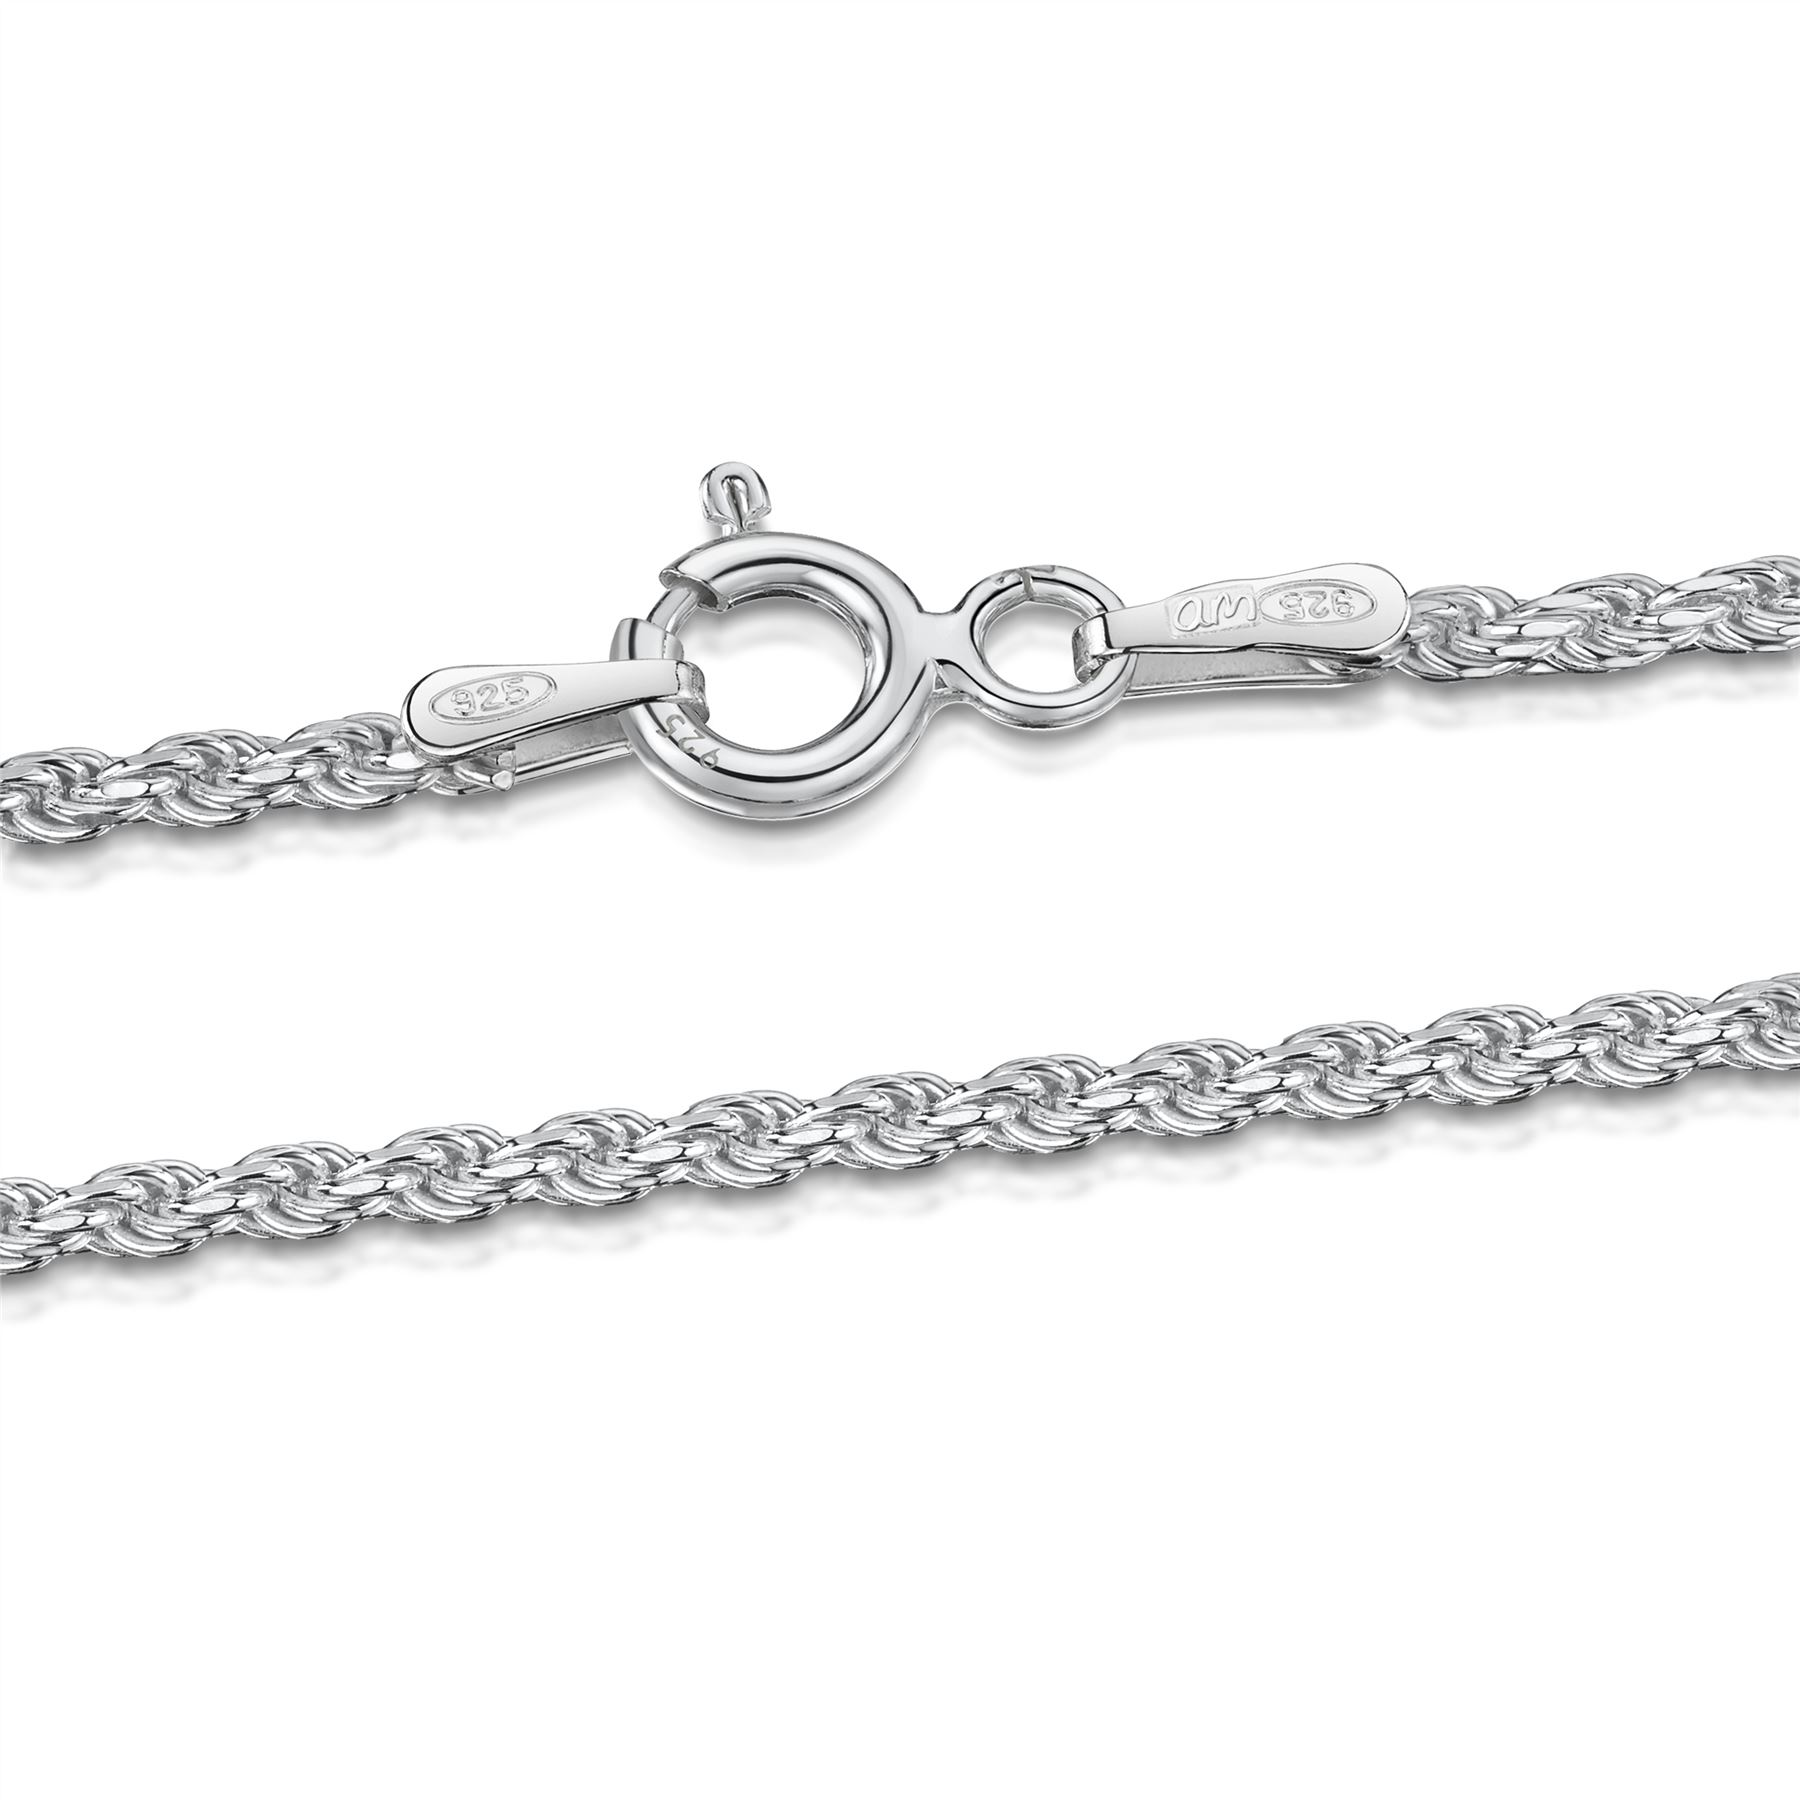 Amberta-Jewelry-Genuine-925-Sterling-Silver-Bracelet-Bangle-Chain-Made-in-Italy thumbnail 28